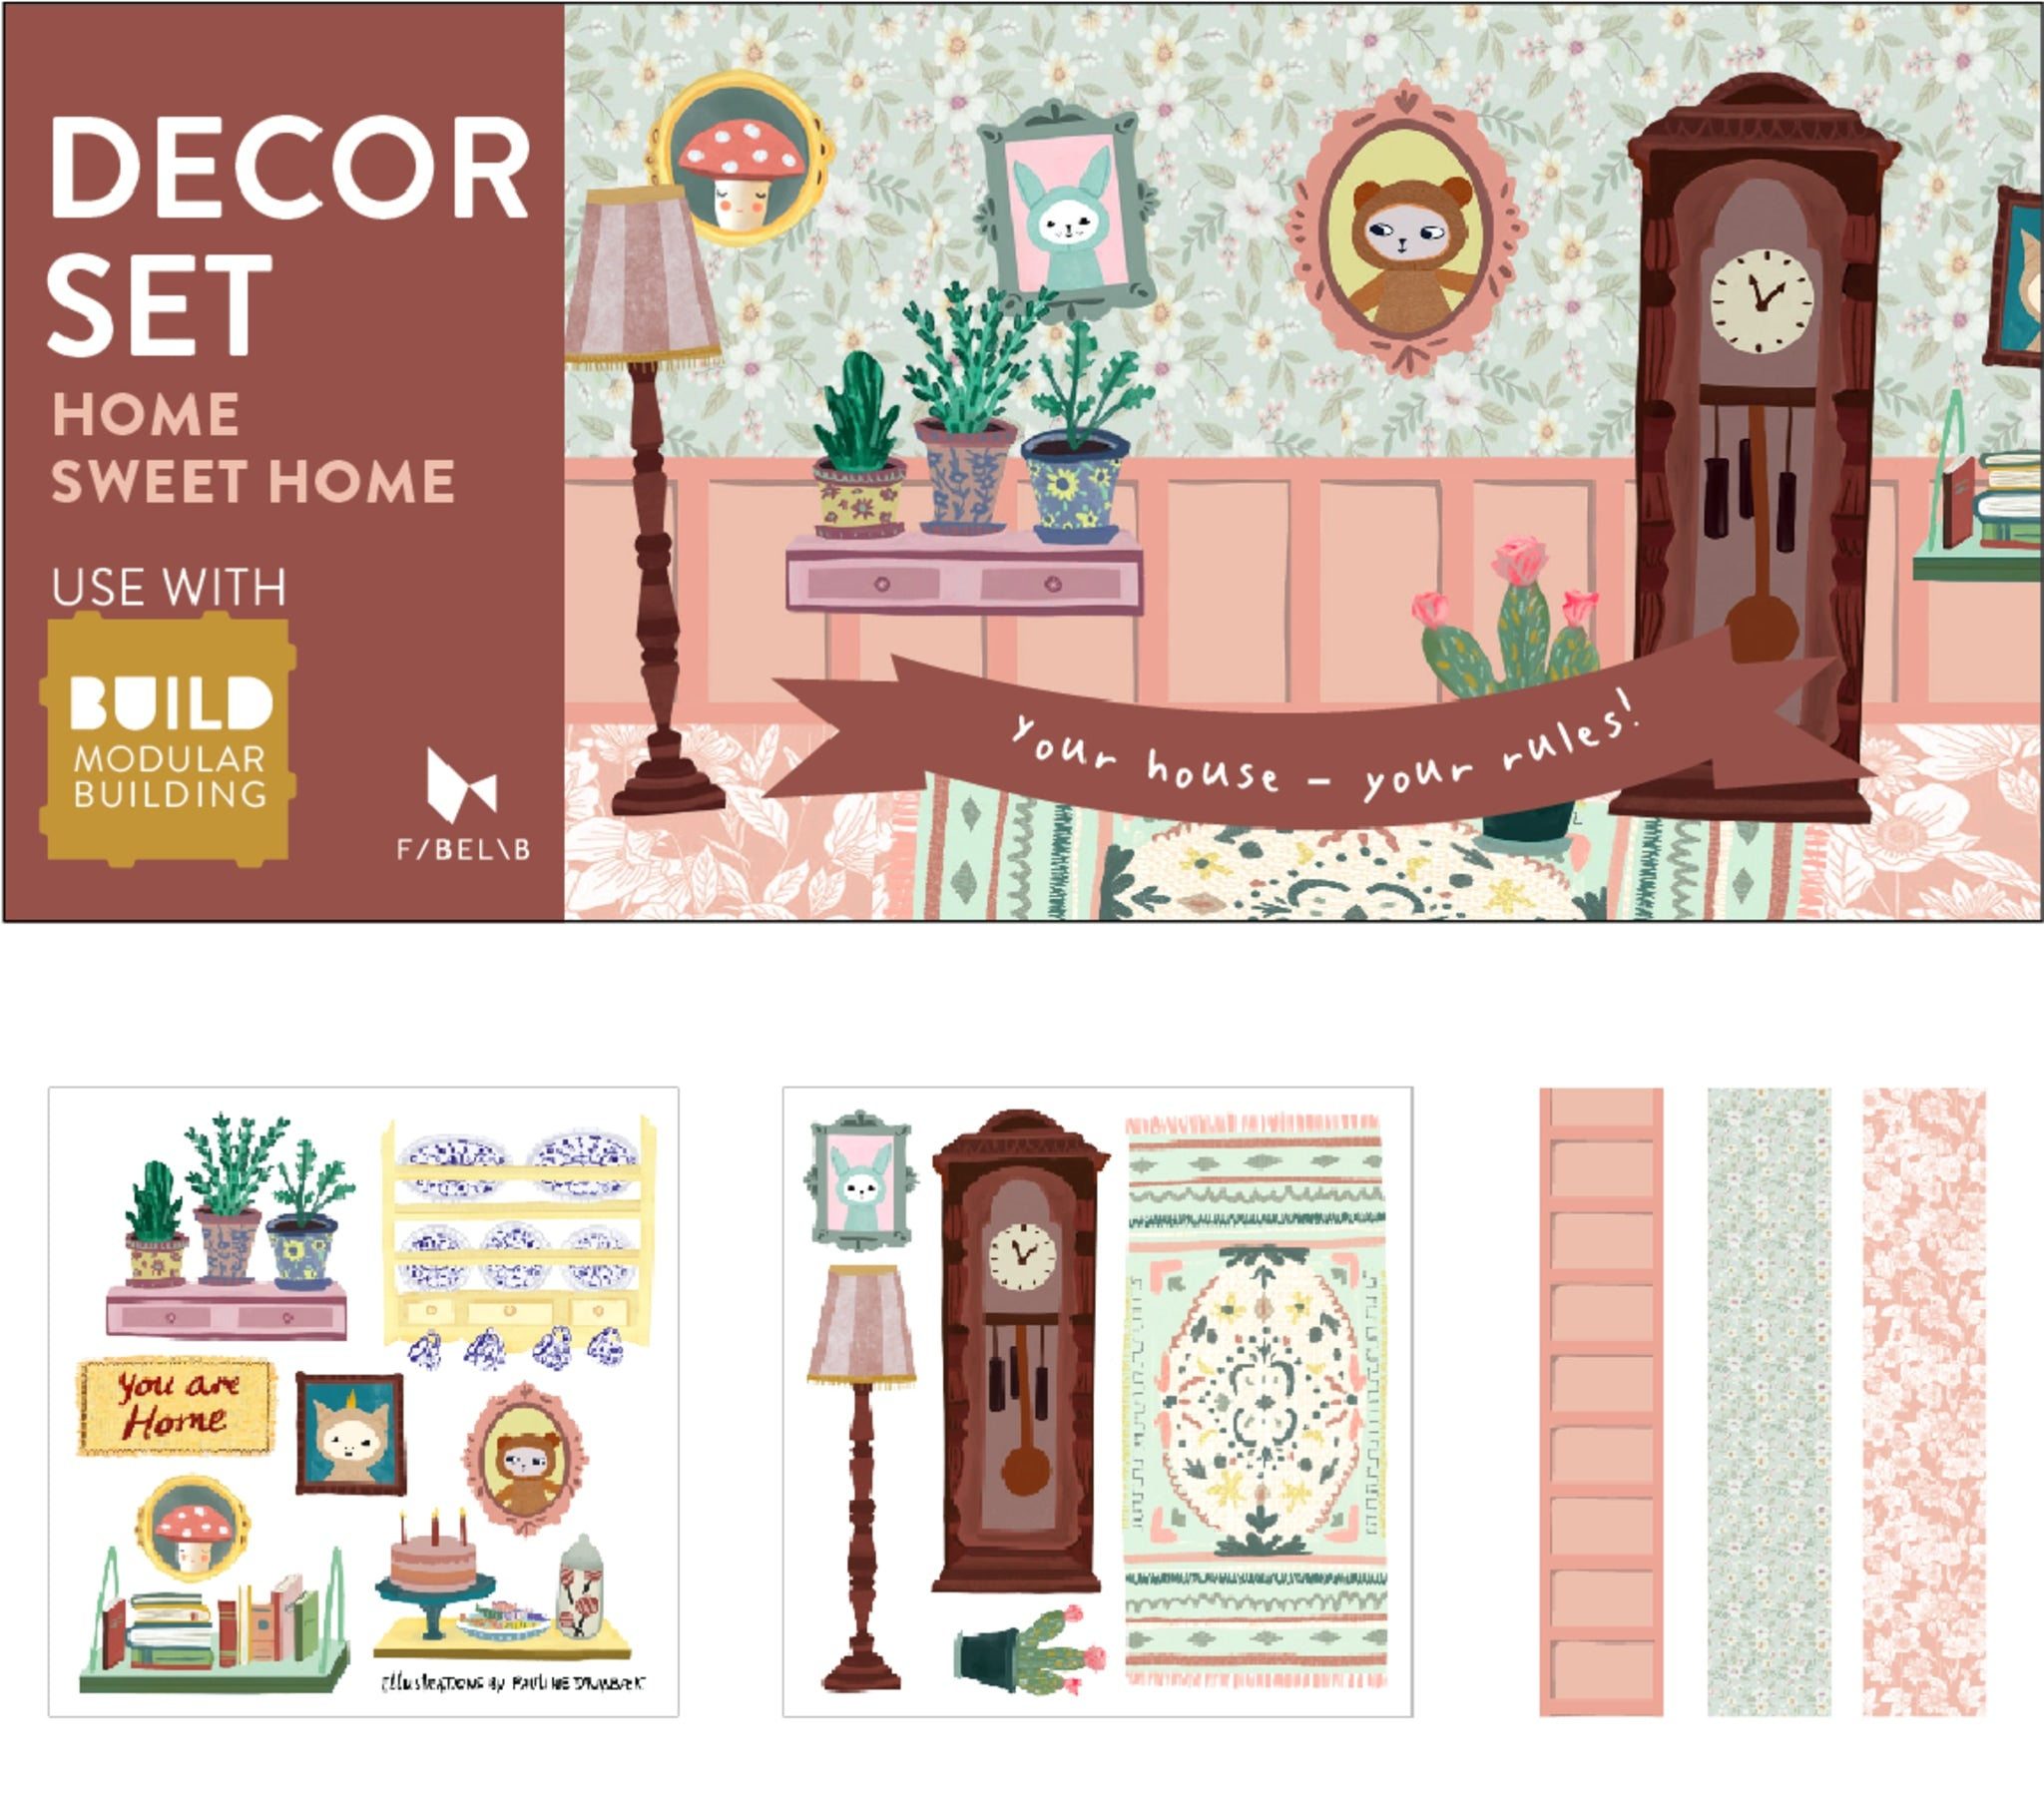 Decor Set - Home Sweet Home